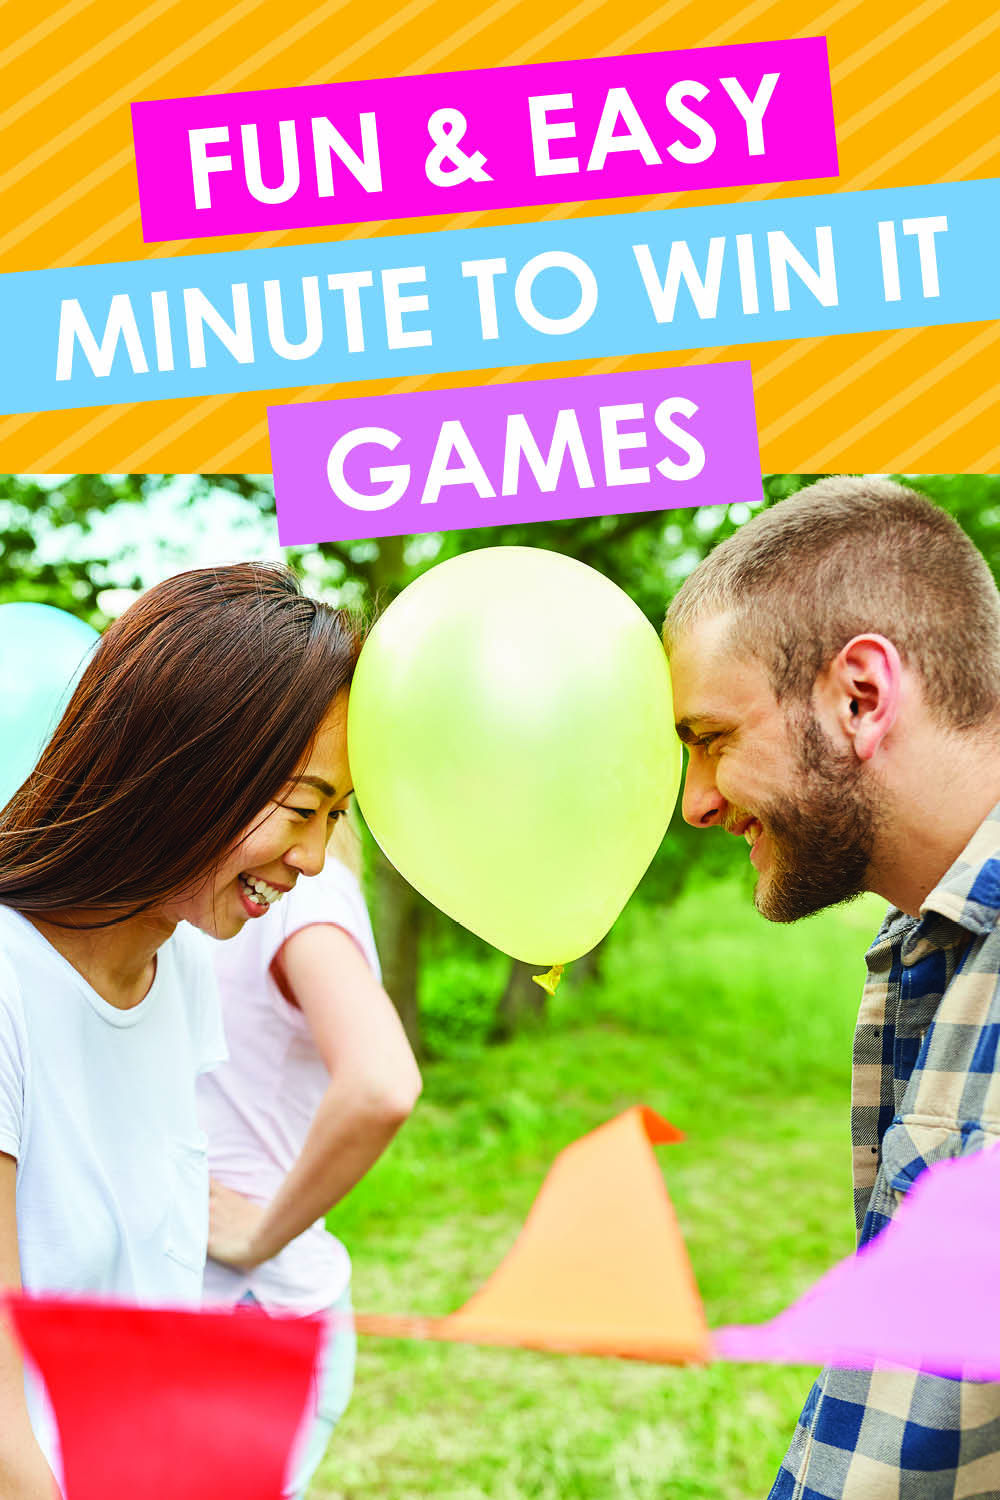 These easy Minute to Win it Games look sooo fun! Definitely pinning!! #datingdivas #easyminutetowinitgames #minutetowinitchallenges